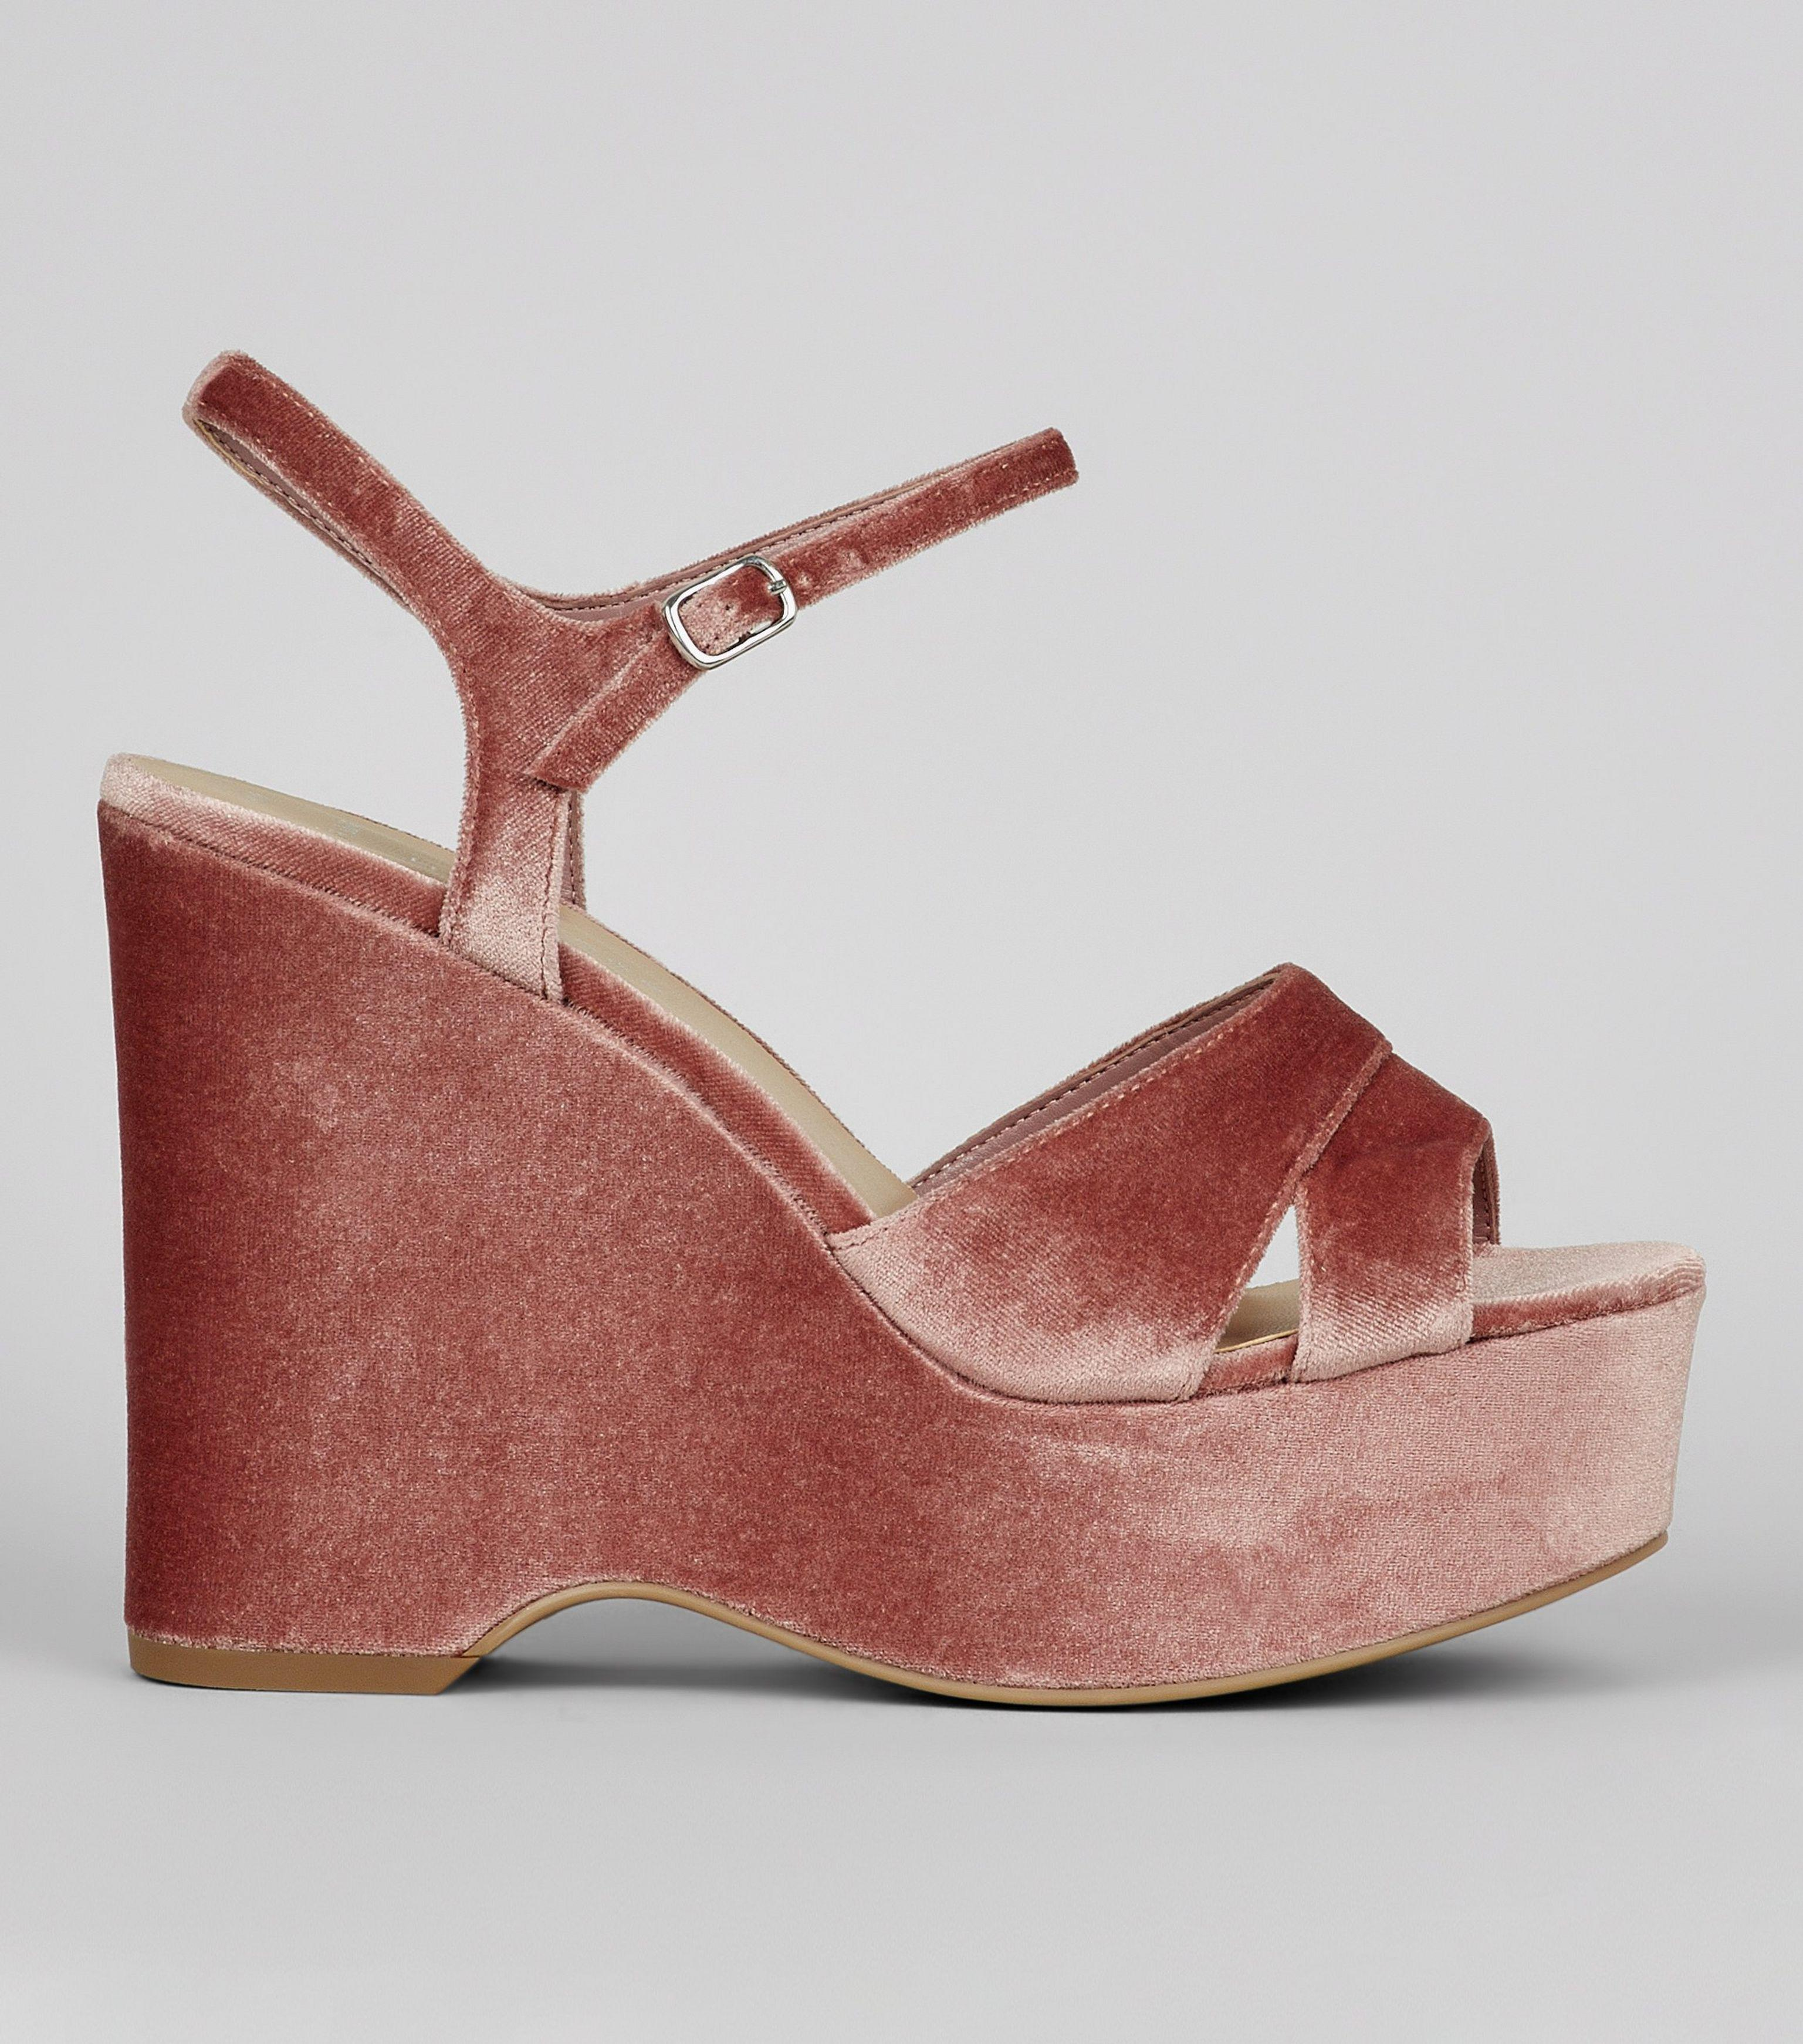 e109a836a87c New Look Wide Fit Nude Pink Velvet Platform Wedge Heels - Lyst